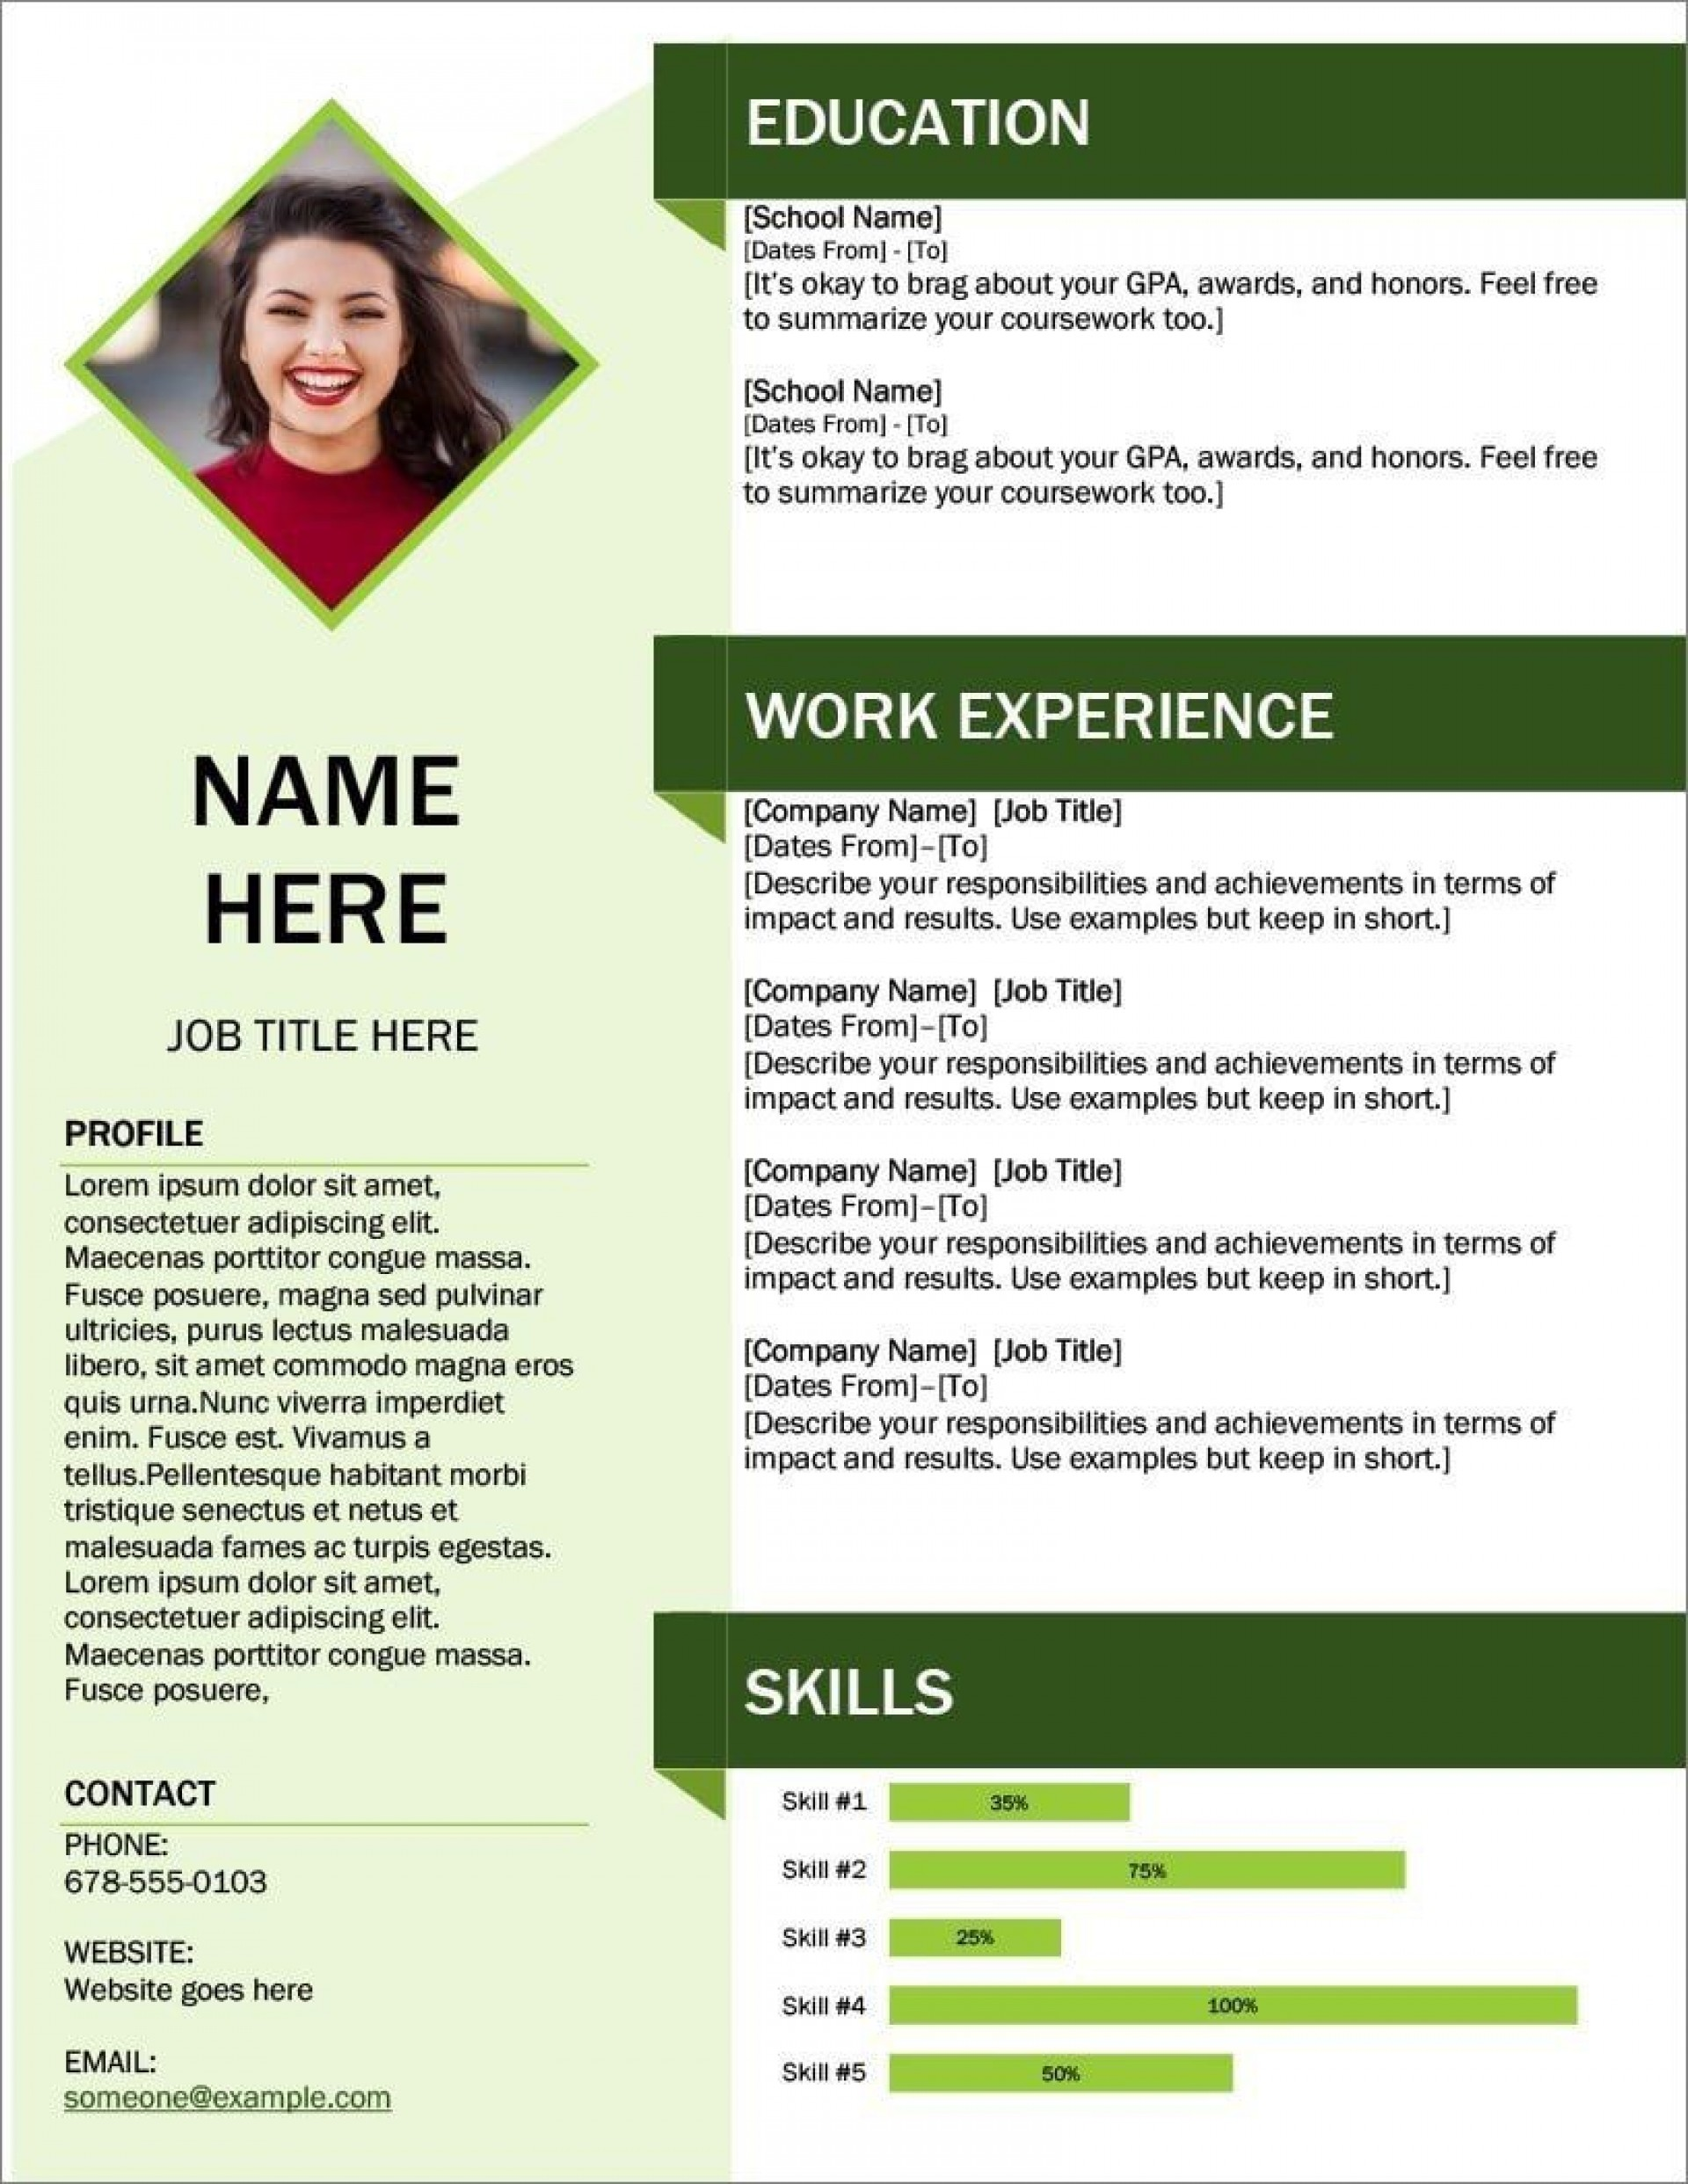 008 Striking Download Resume Sample In Word Format High Resolution  Driver Cv Free Best Template1920